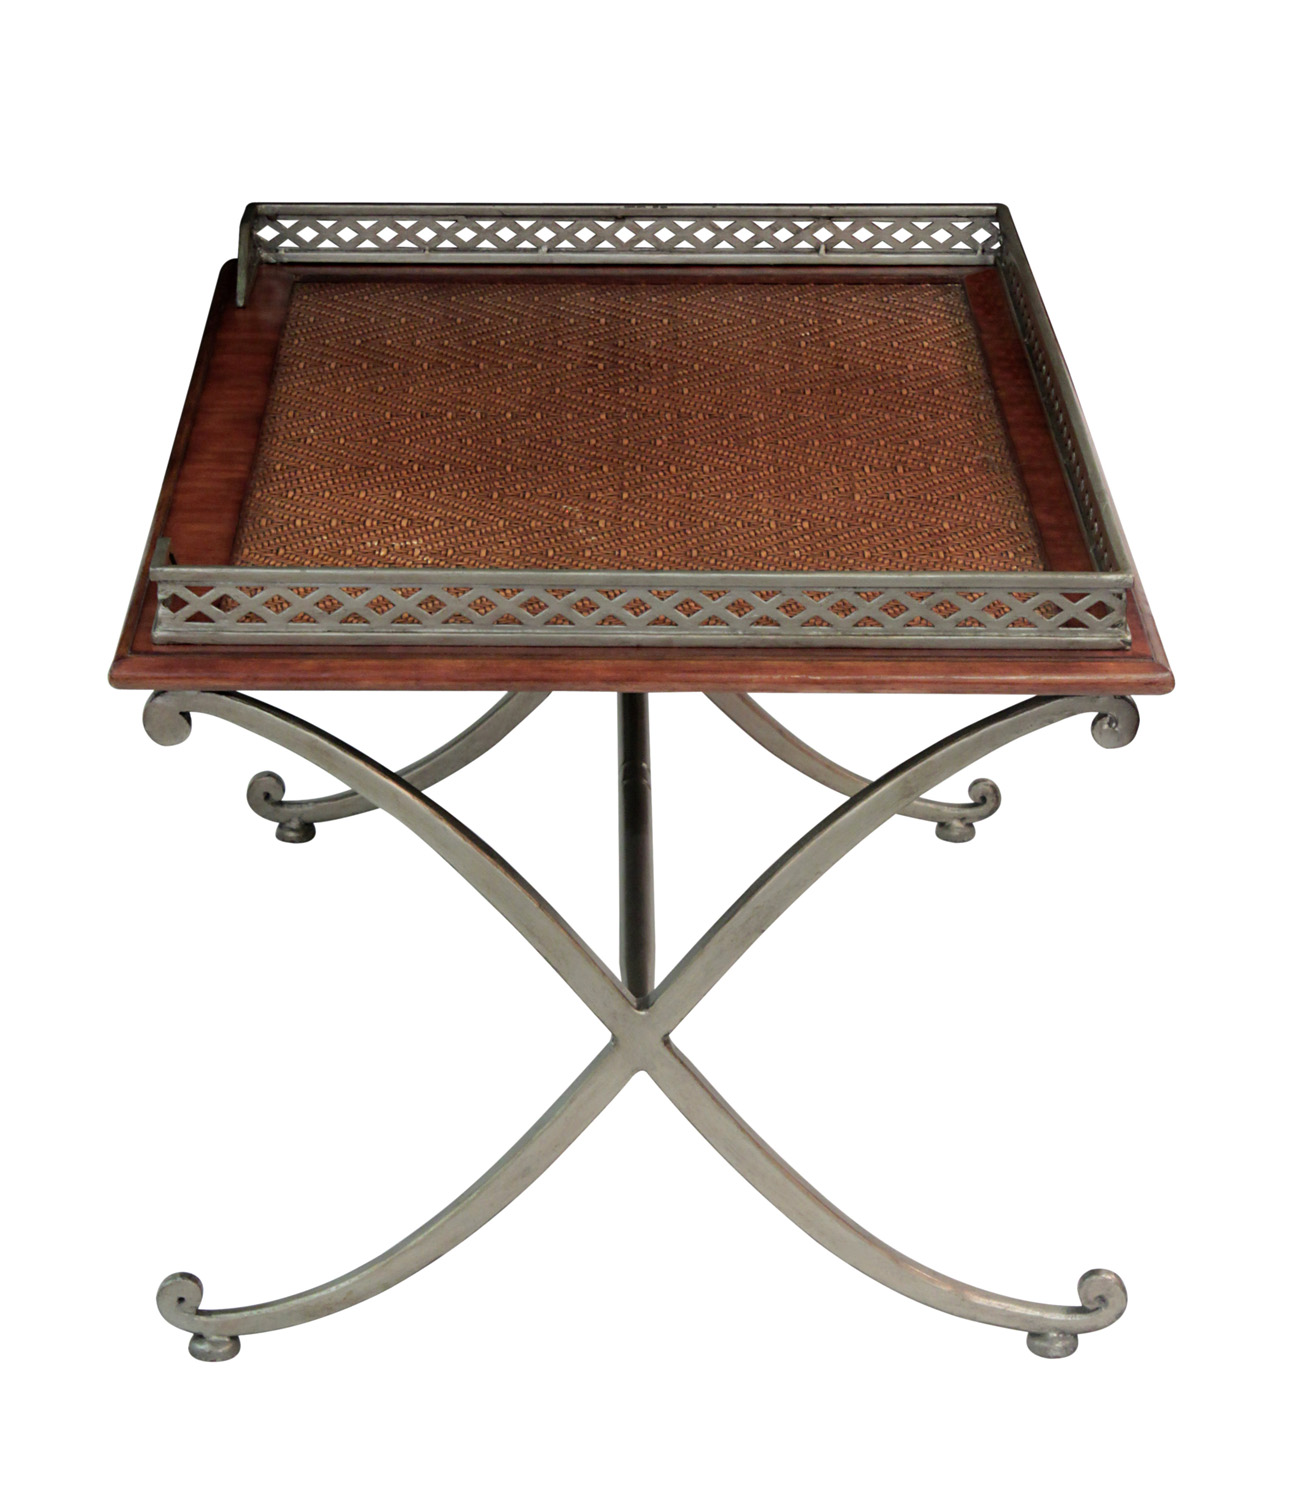 grasscloth 55 top under glass coffeetable336 detail1 hires.jpg